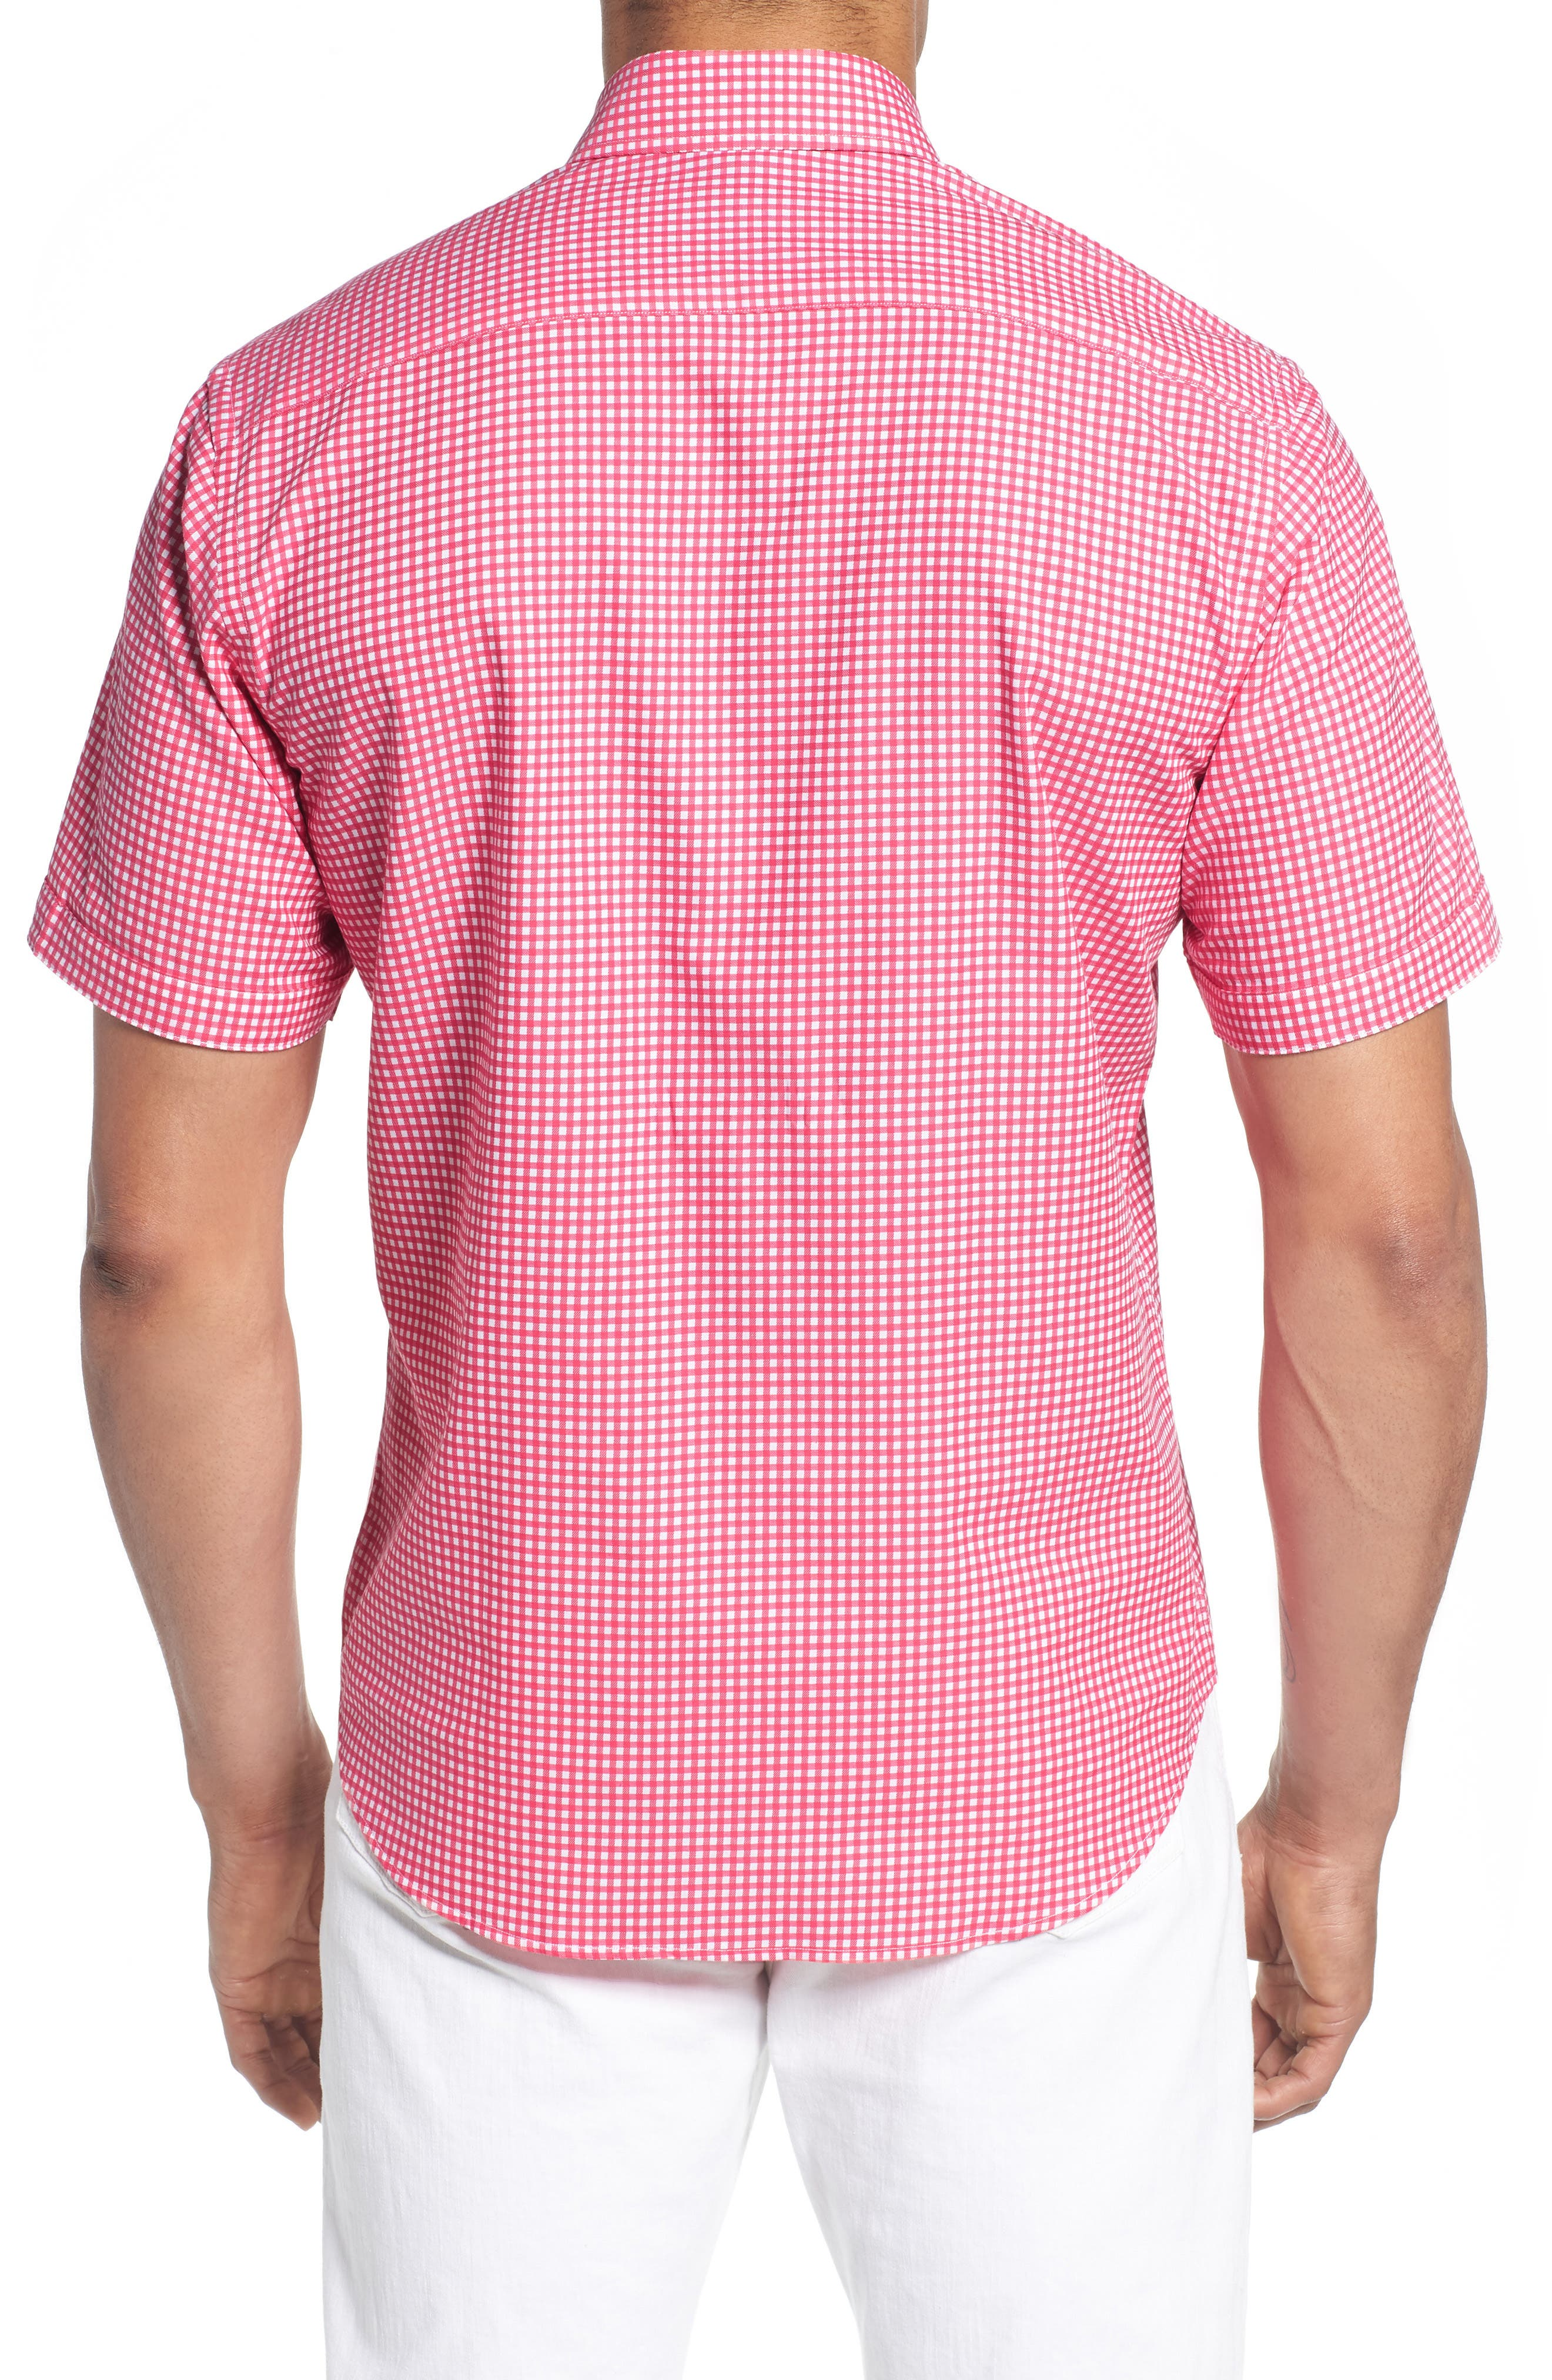 Aden Regular Fit Sport Shirt,                             Alternate thumbnail 2, color,                             950